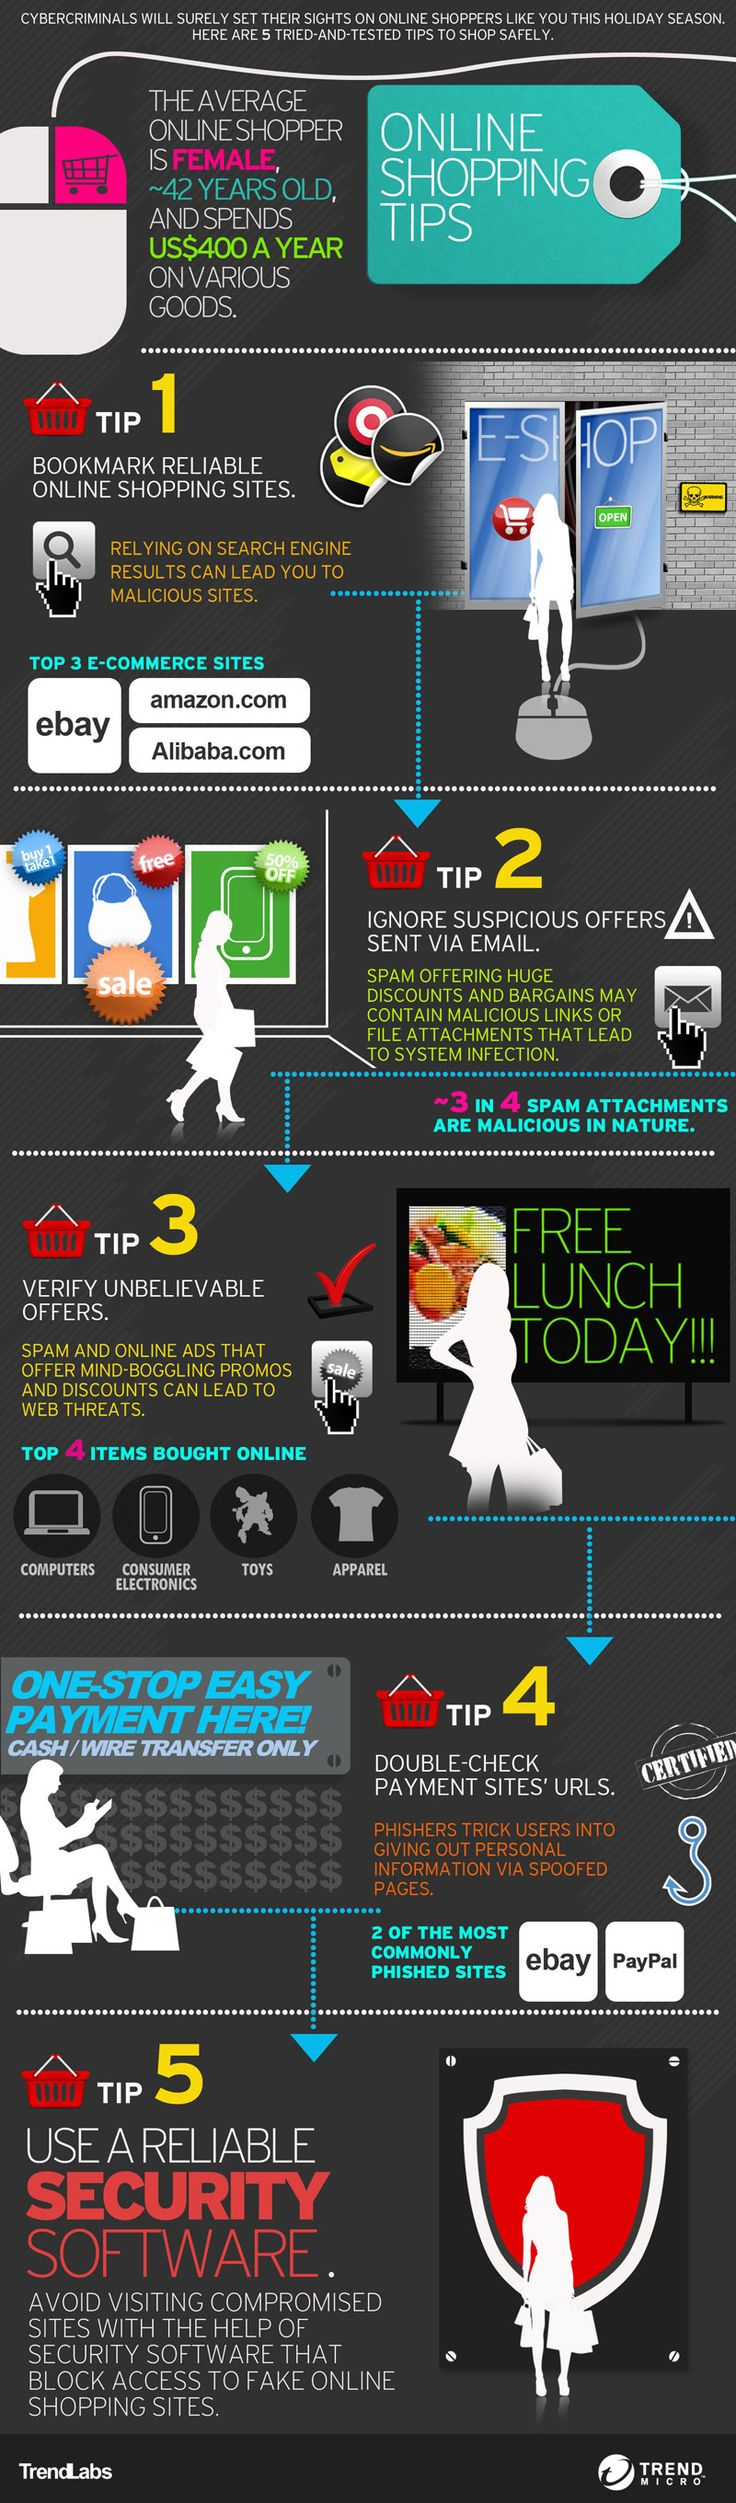 View mobile site about digitalbuyer com affiliate program site map - Online Shopping Safety Made Easy Infographic